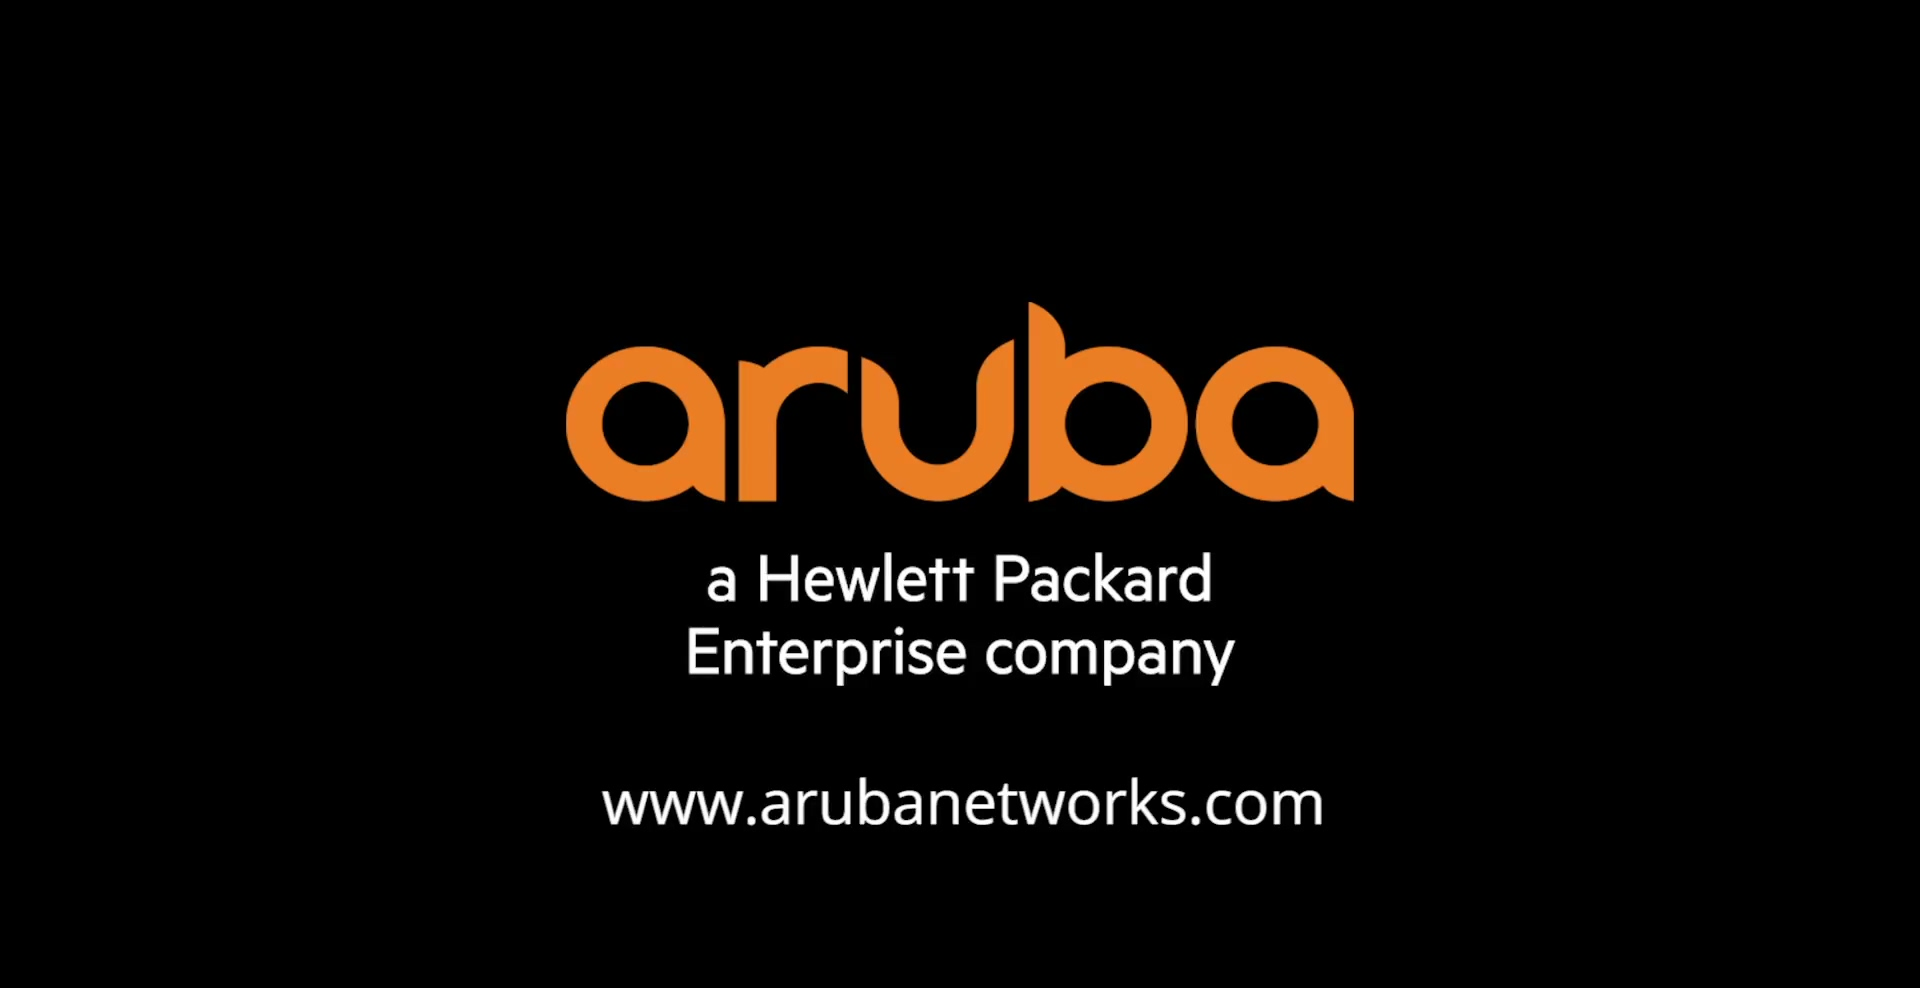 y2mate.com - Let Aruba help you innovate at the speed of mobile and IoT_x2fu8o-0X1Y_1080p